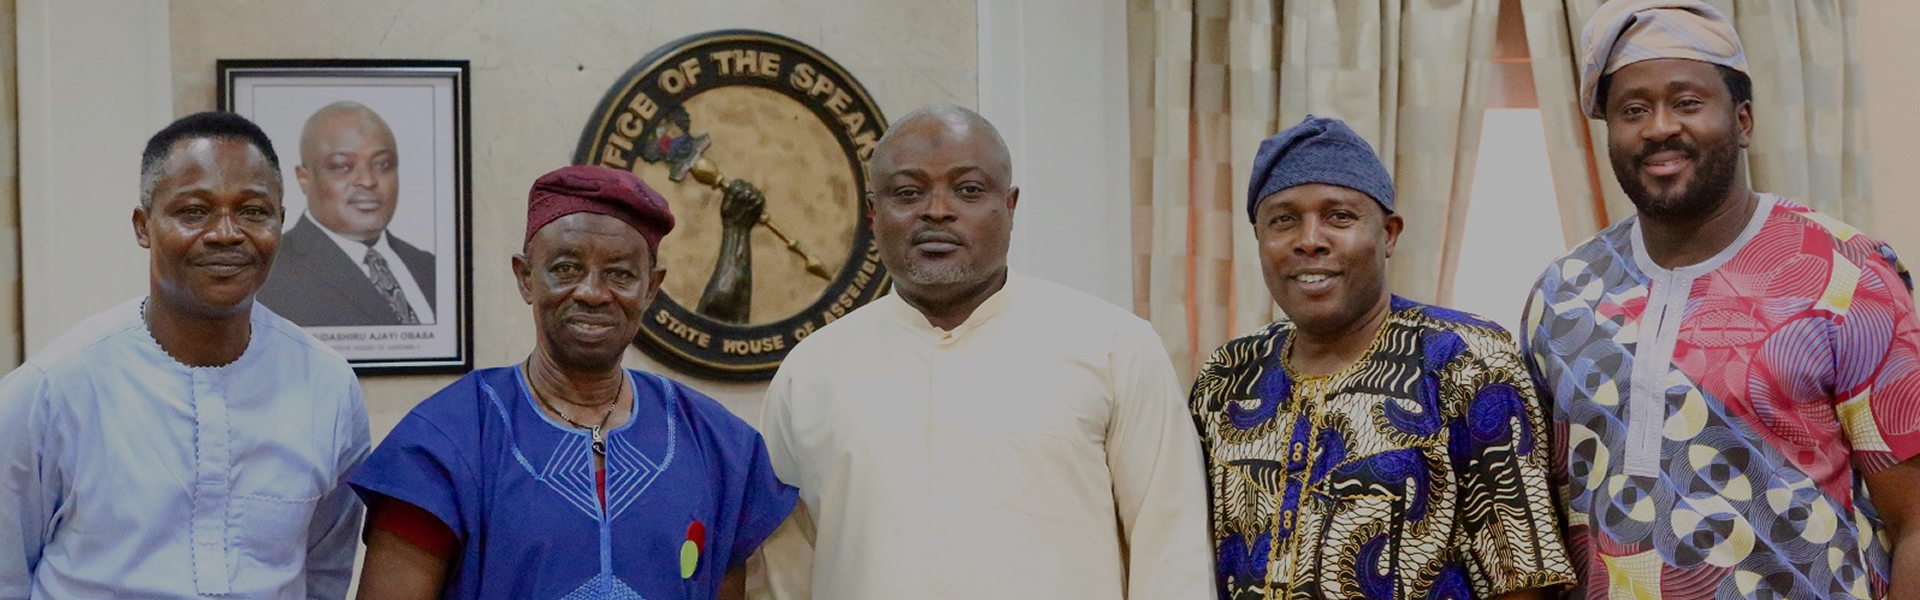 Tunde Kelani visits Assembly